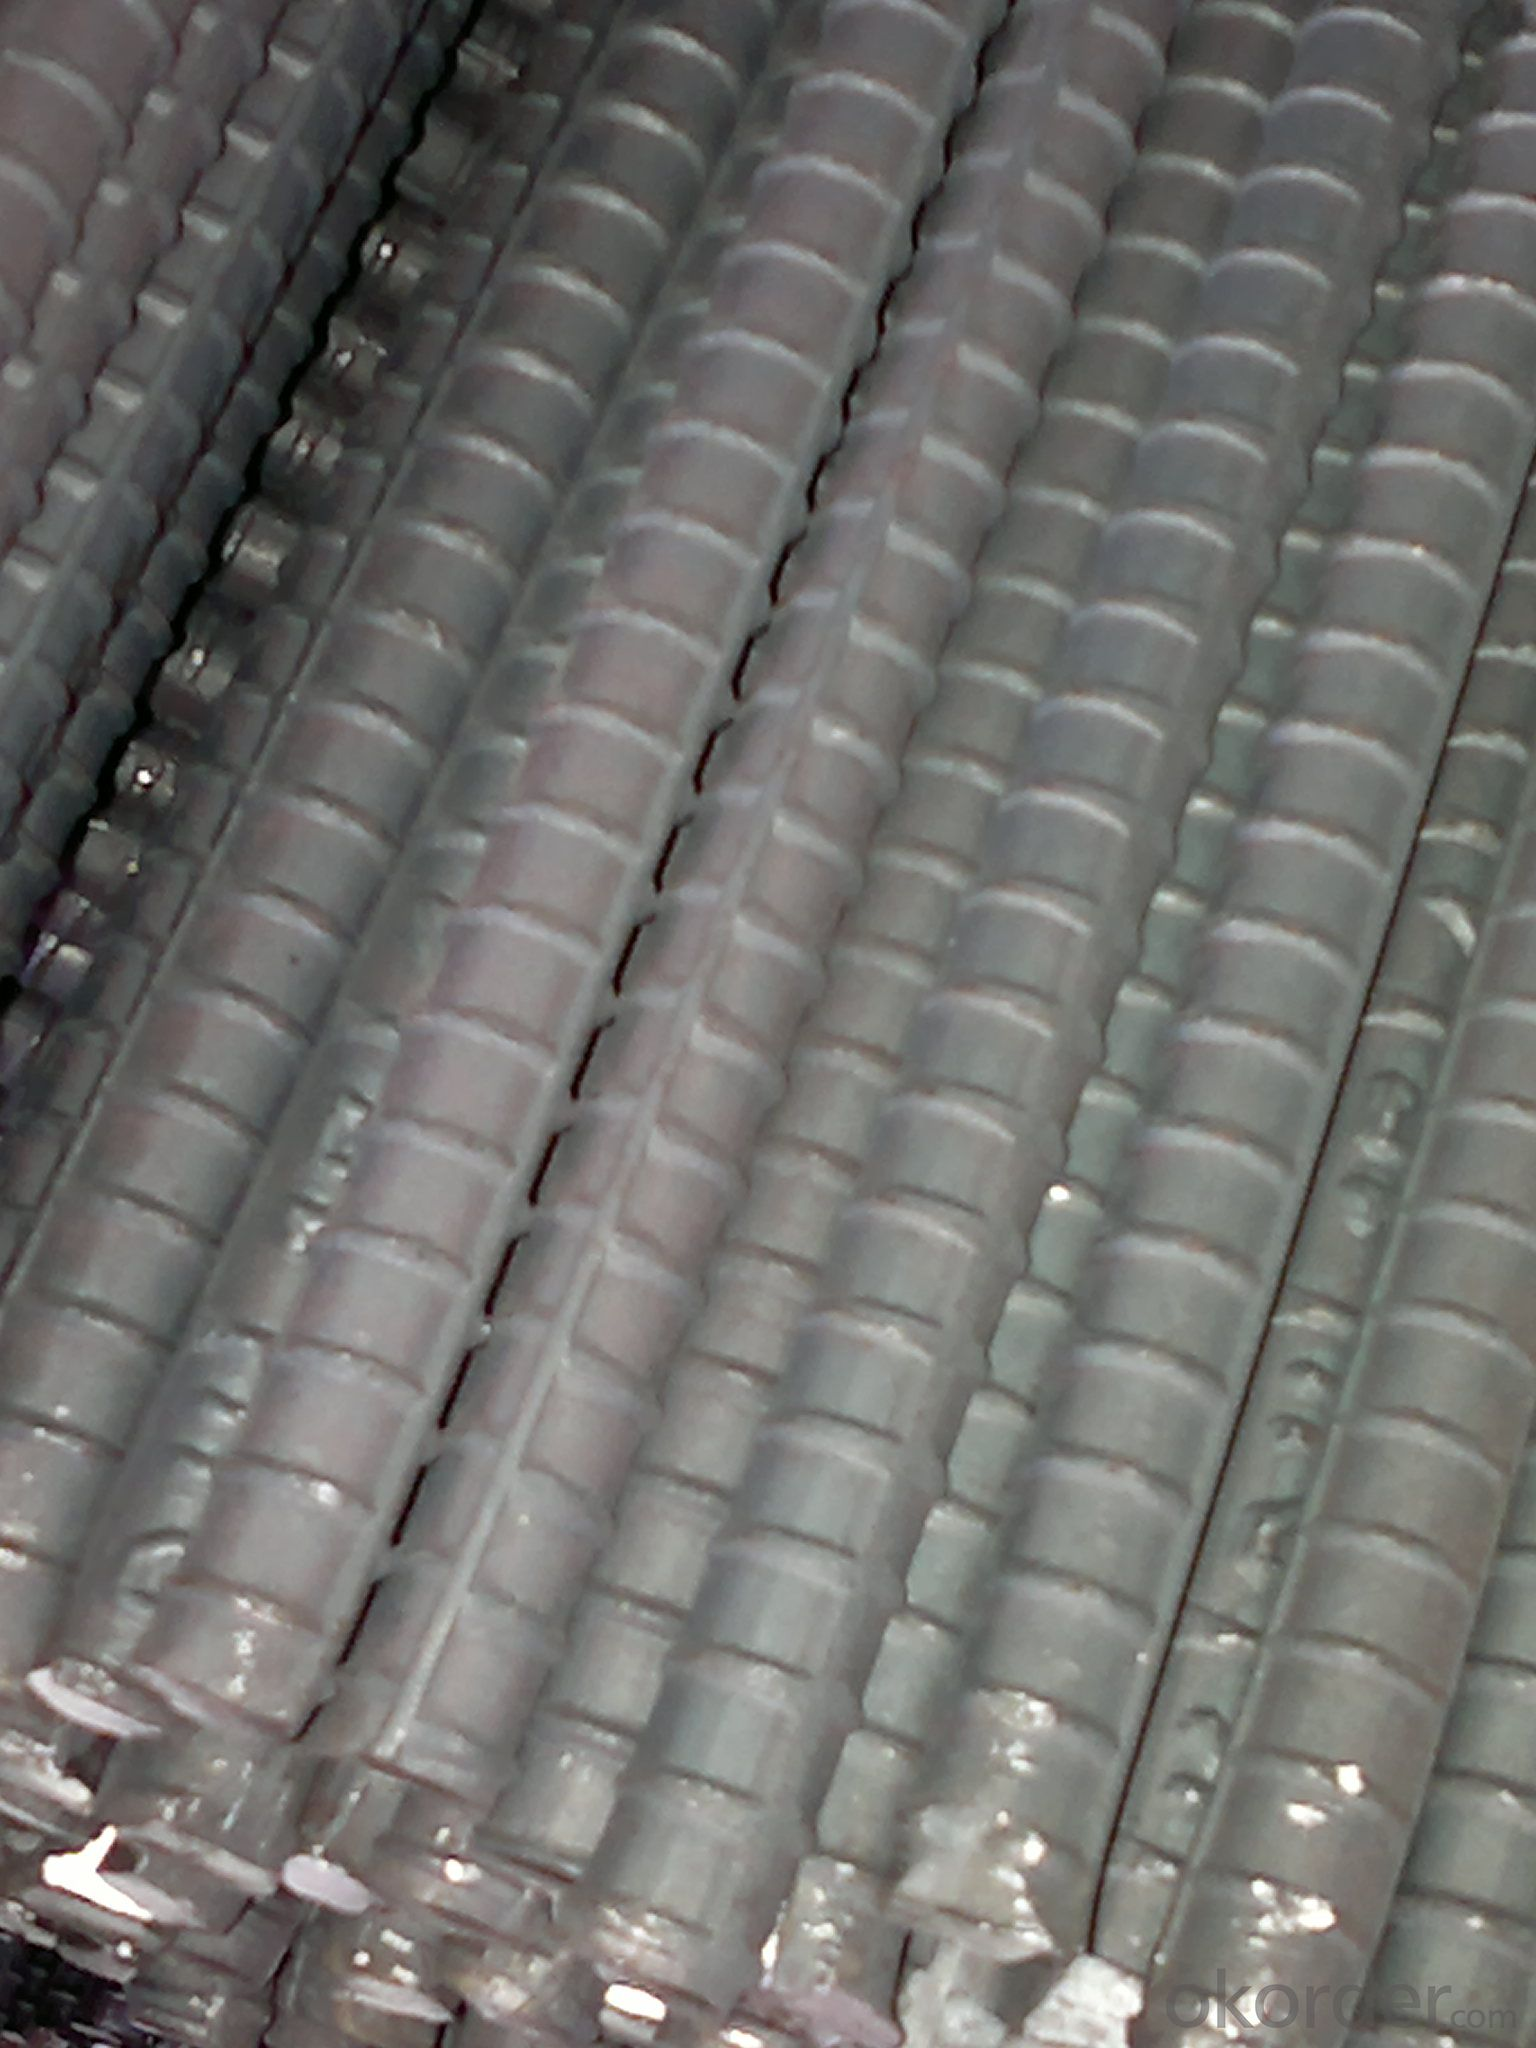 Hot rolled steel deformed bar rebar deformed steel bar